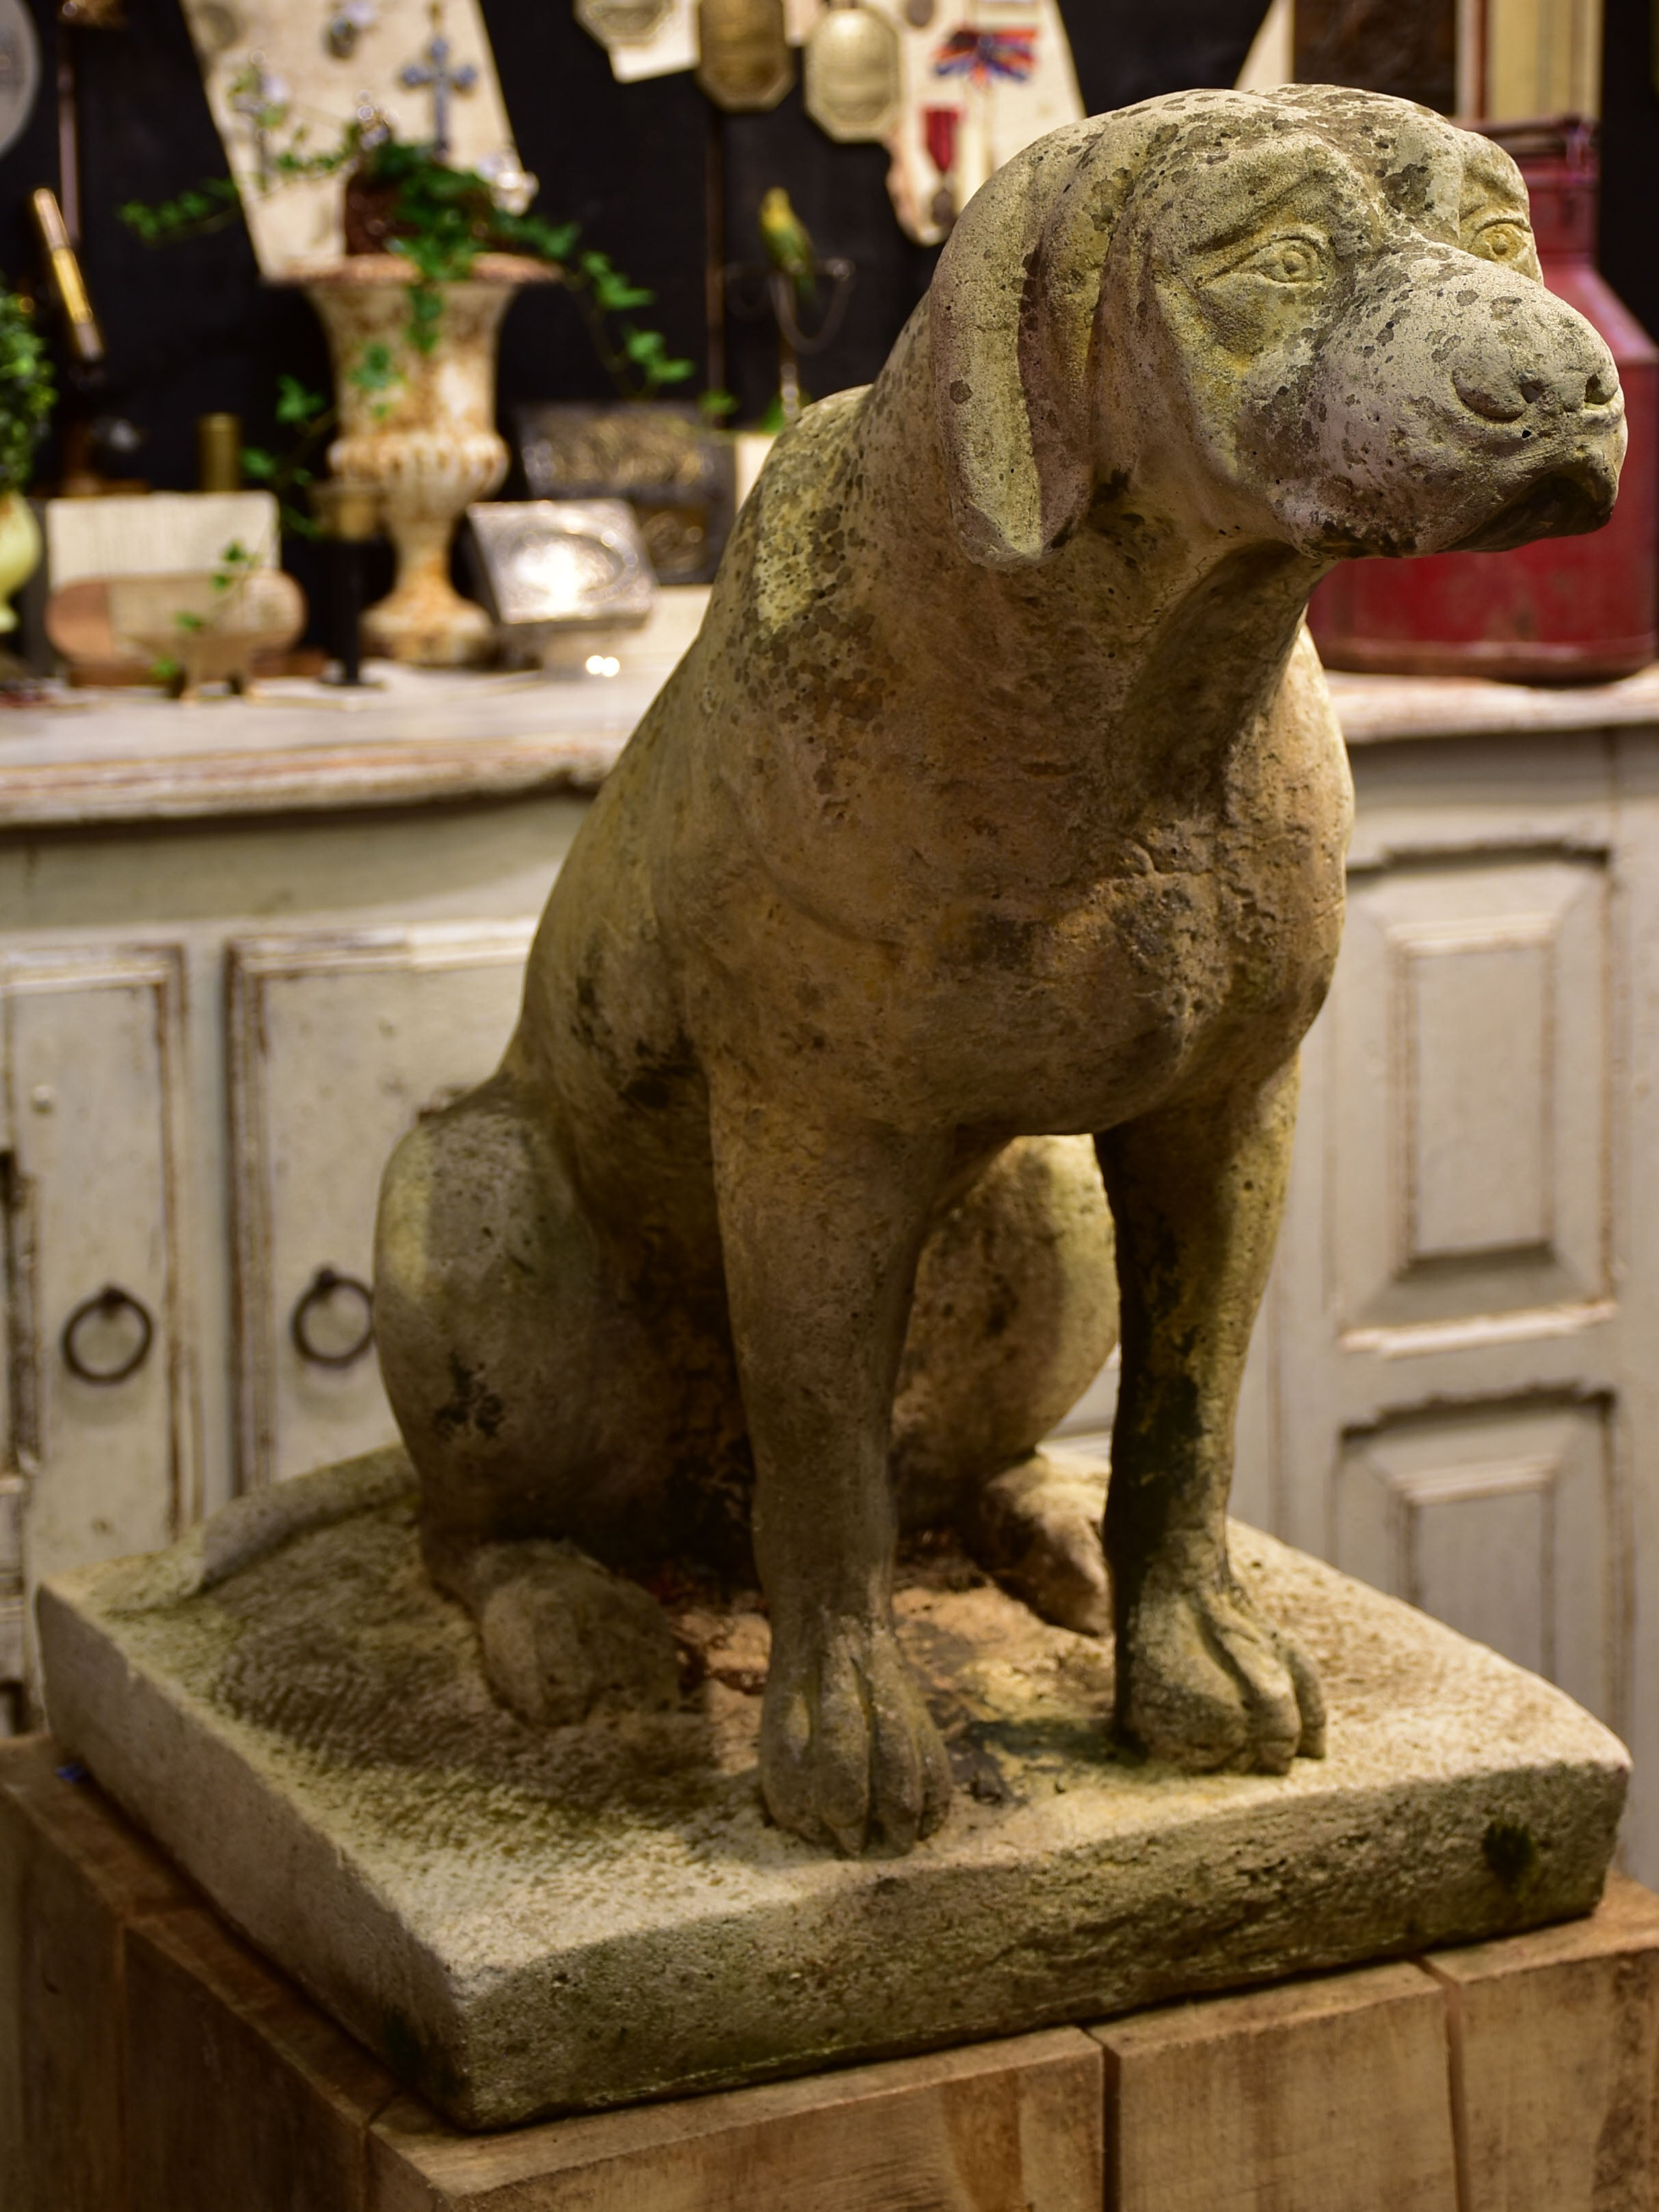 Pair of vintage French garden sculptures - dogs